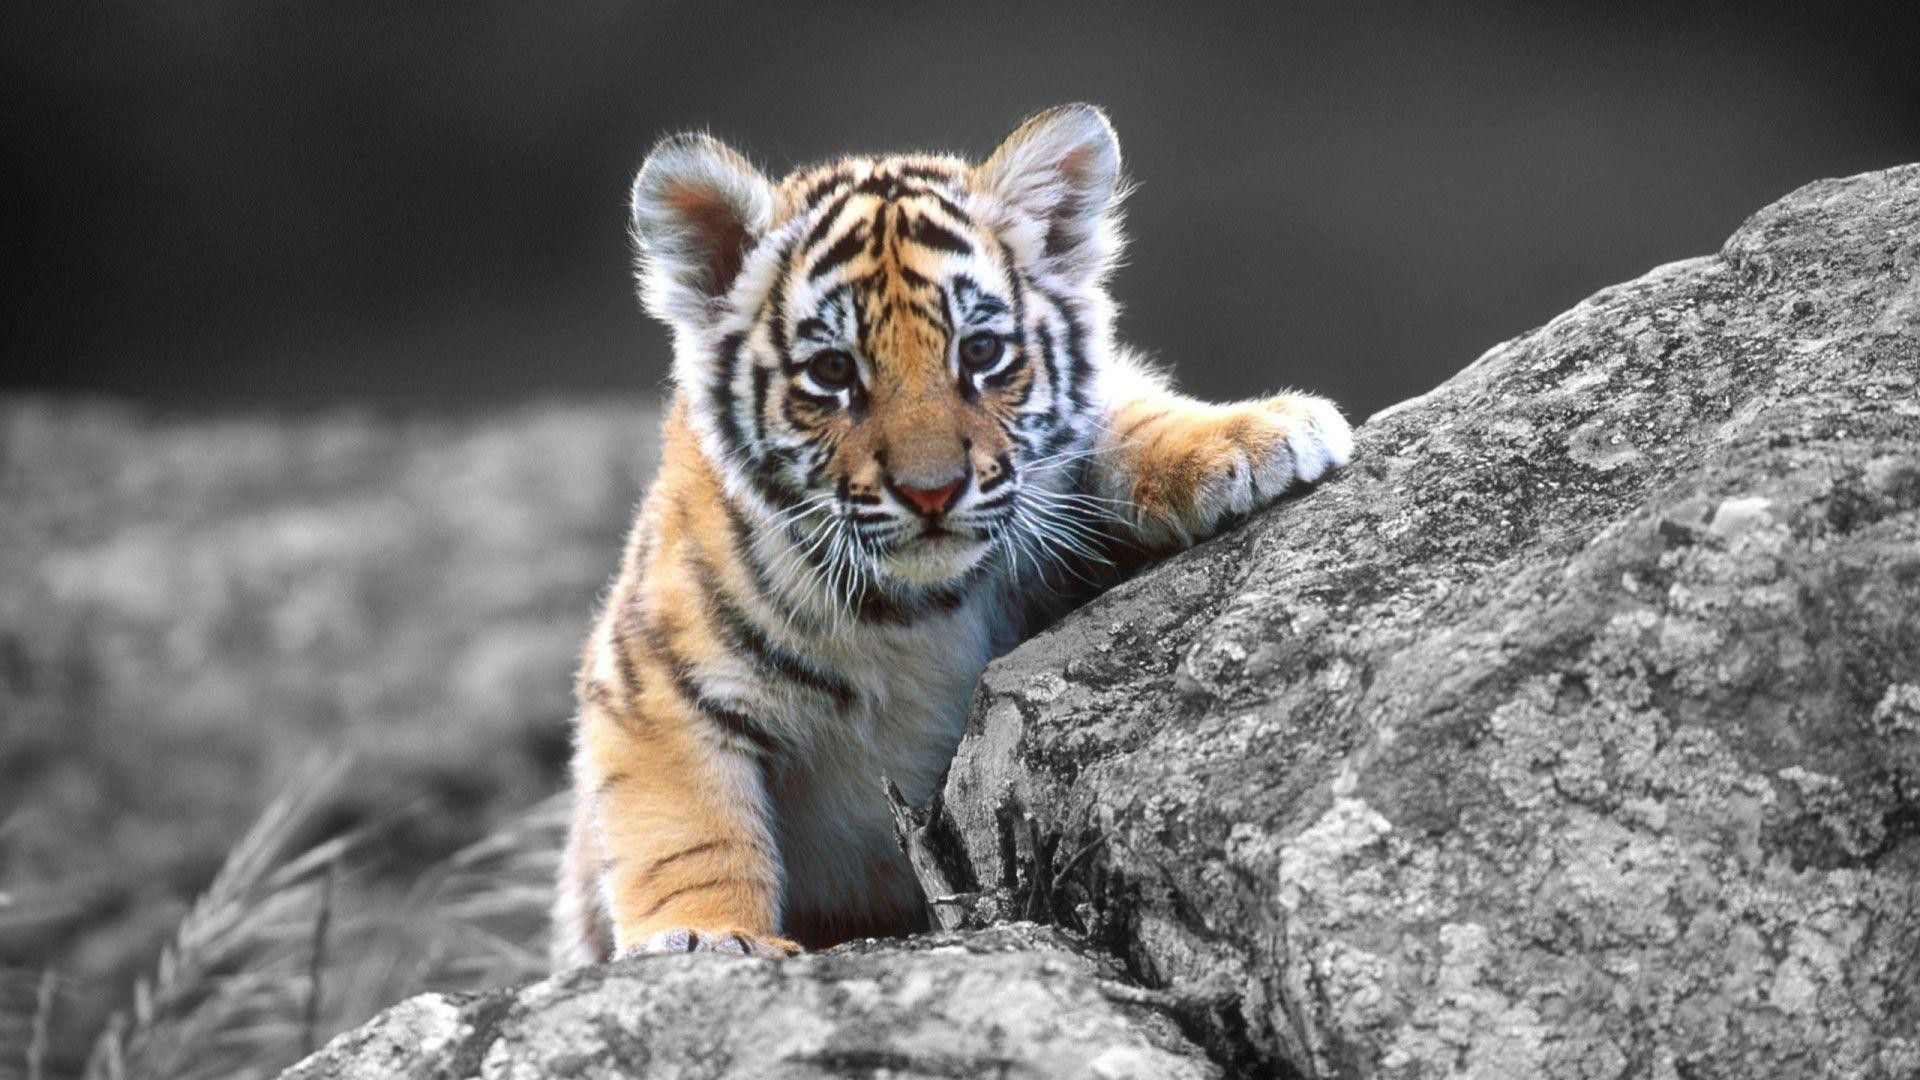 hd wallpapers tiger for mobile